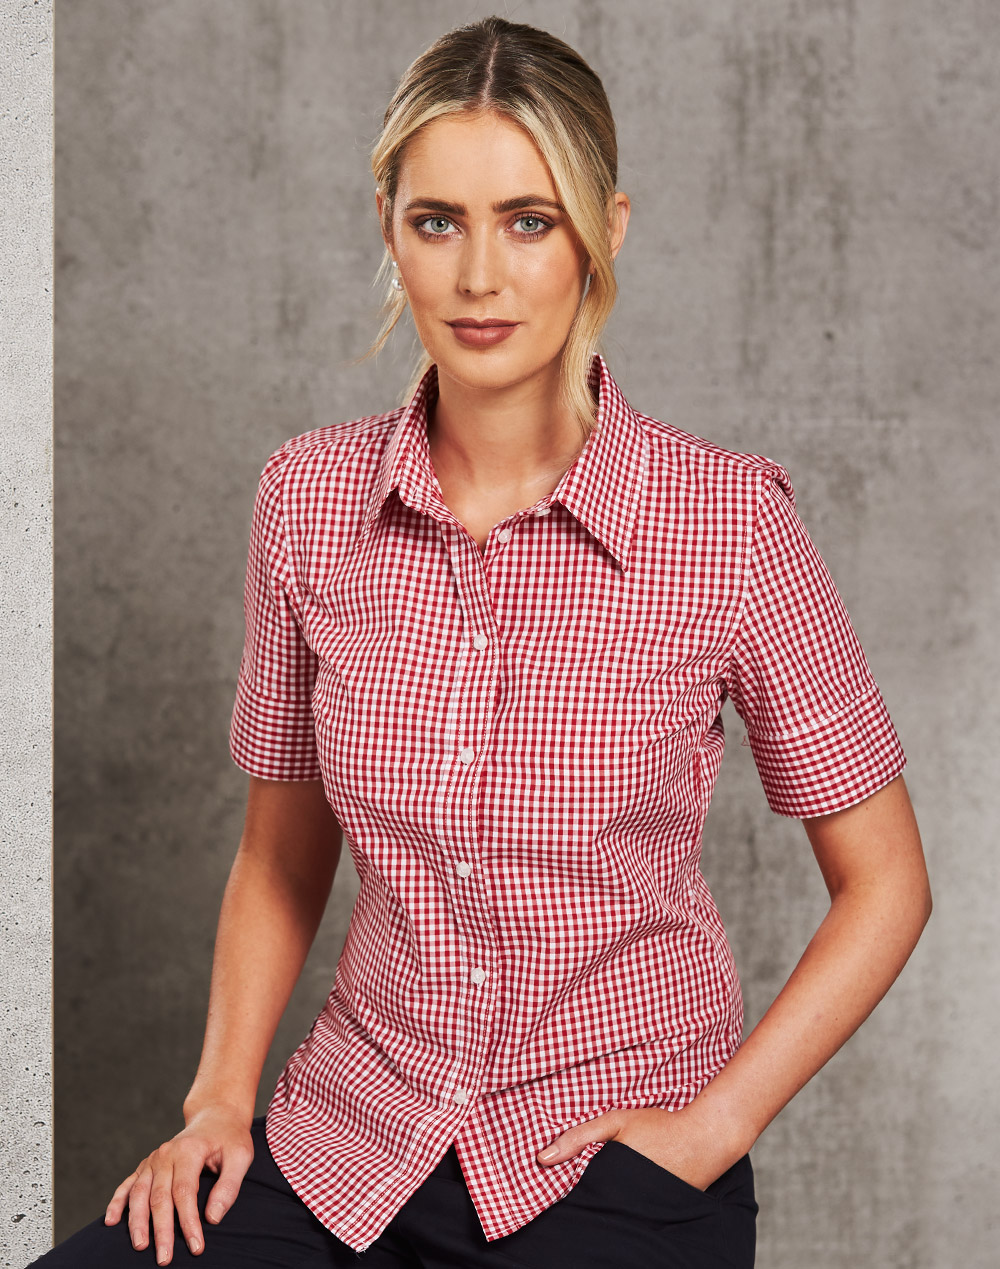 M8300S Ladies' Gingham Check Short Sleeve Shirt